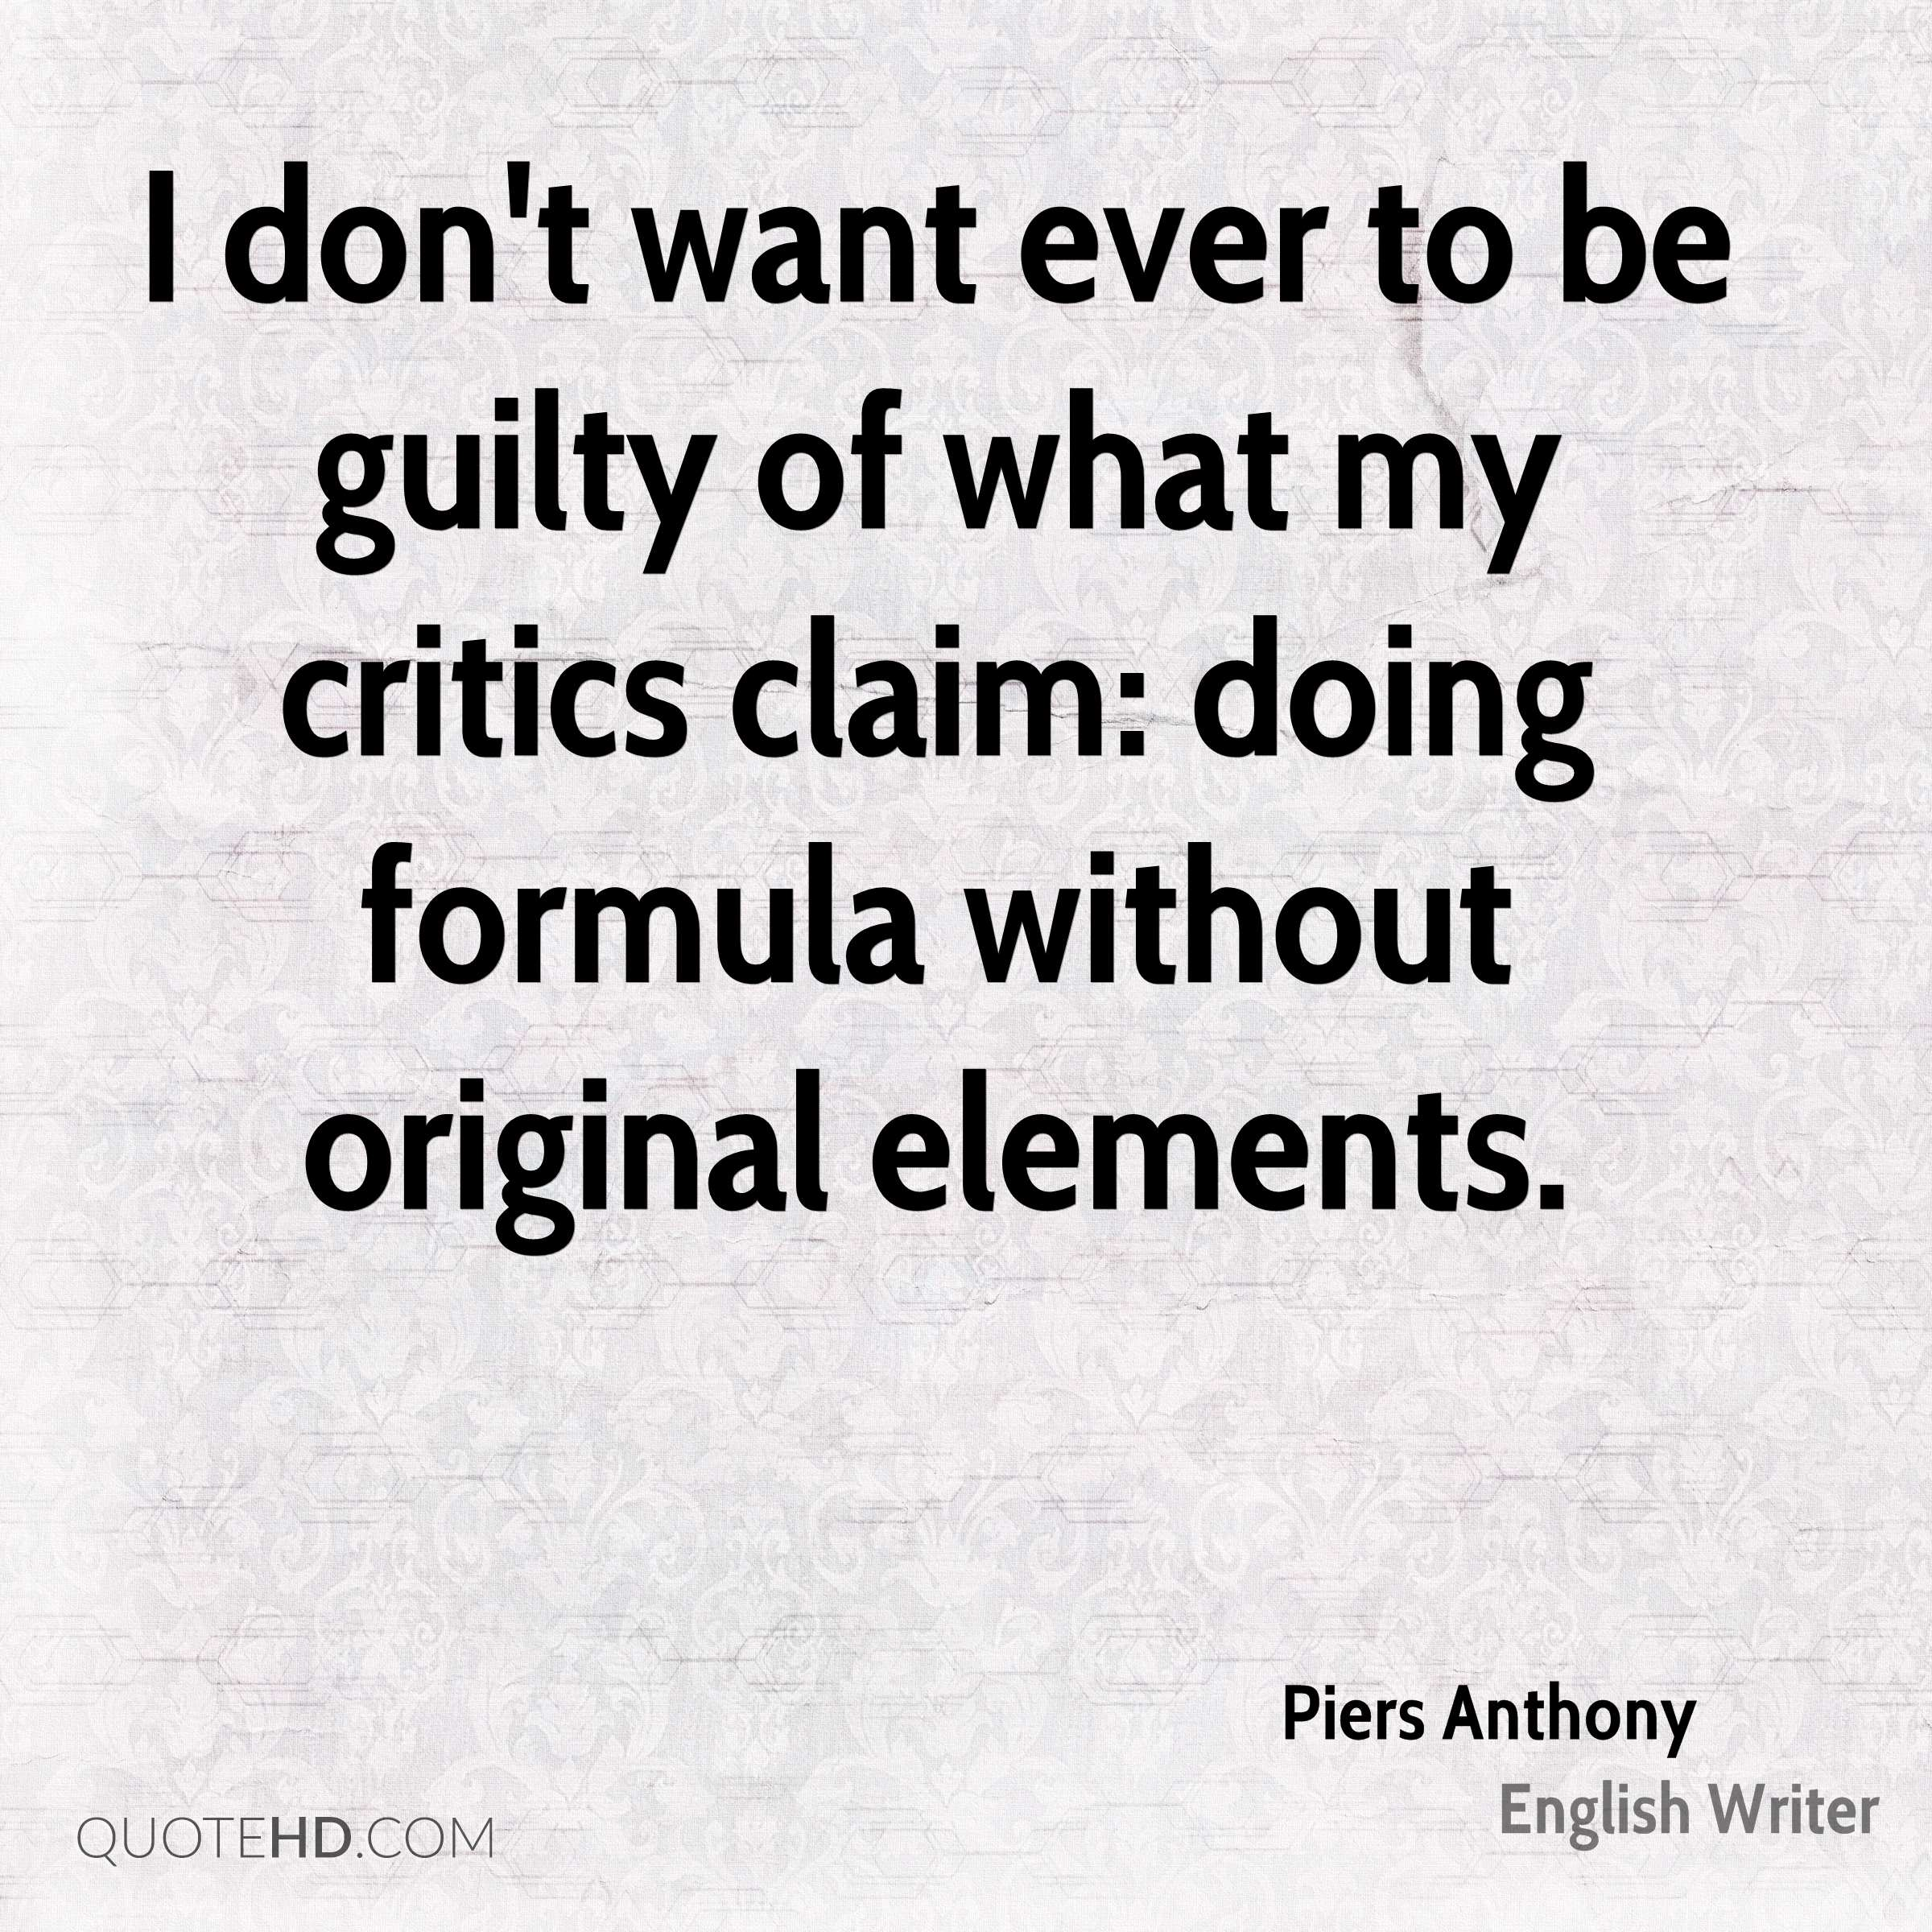 I don't want ever to be guilty of what my critics claim: doing formula without original elements.